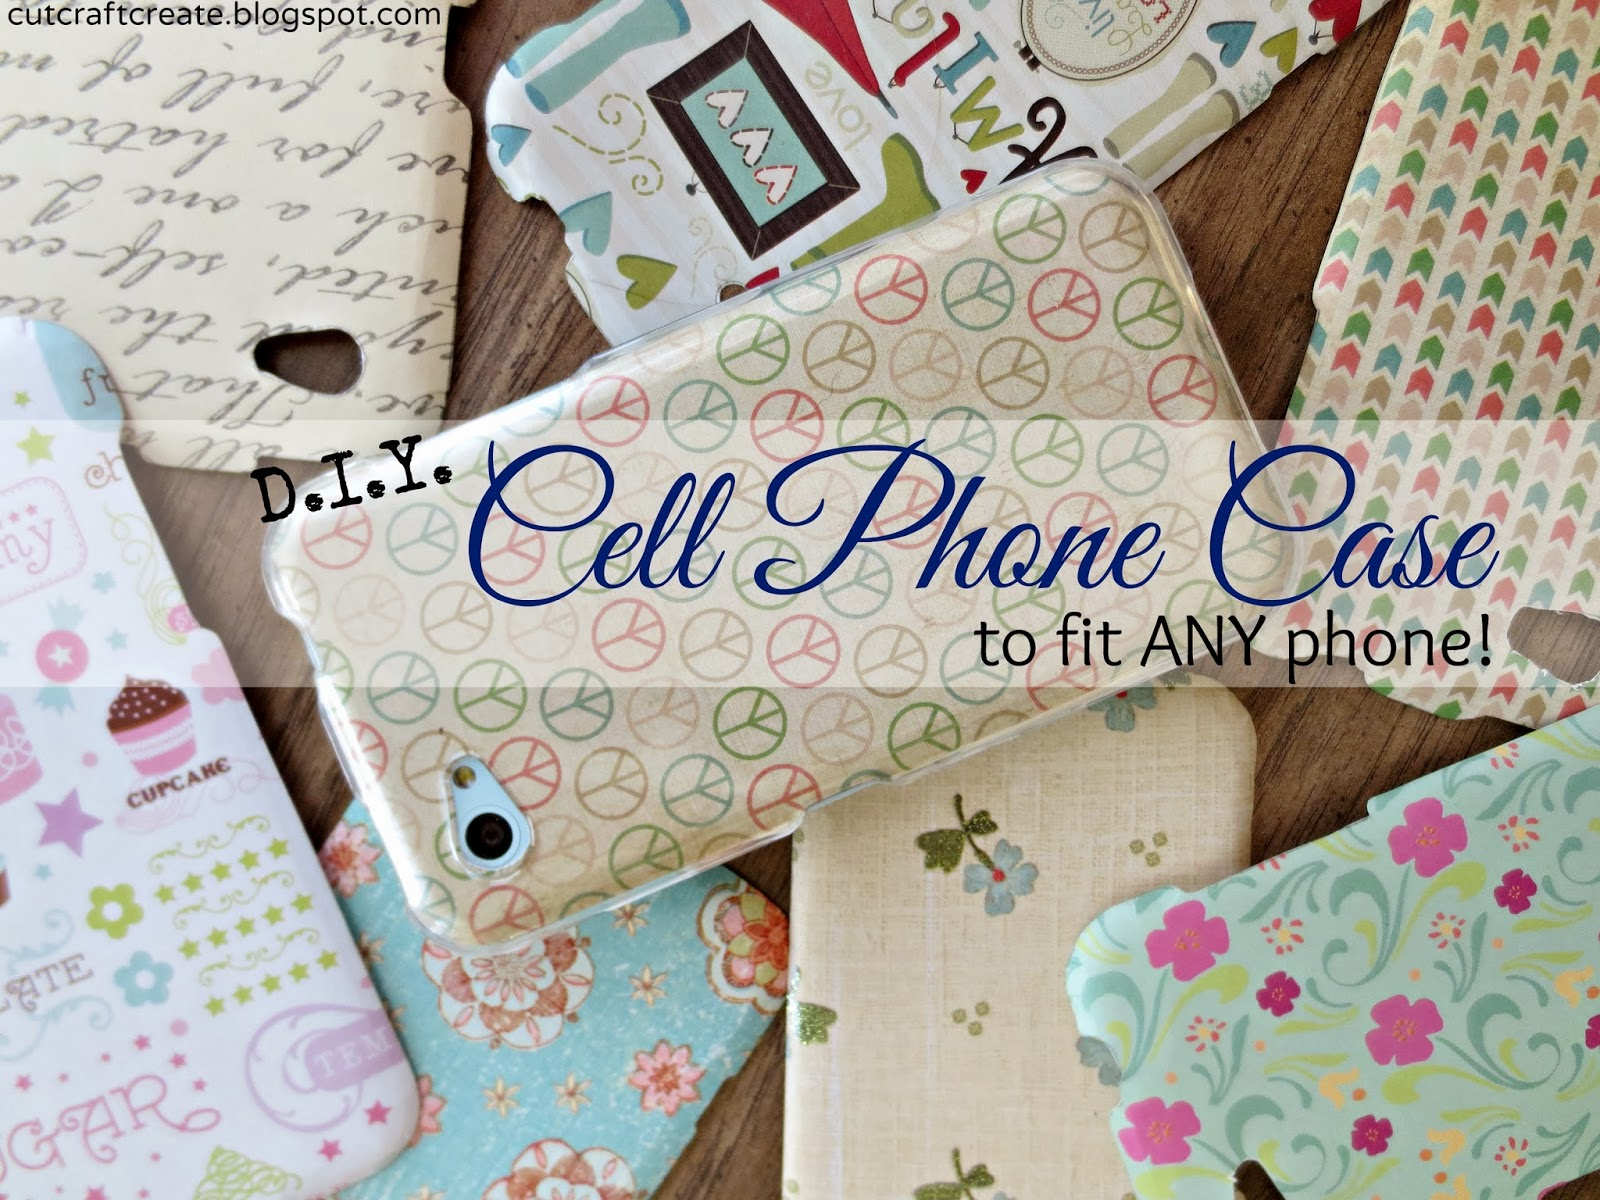 DIY Cell Phone Case Tutorial